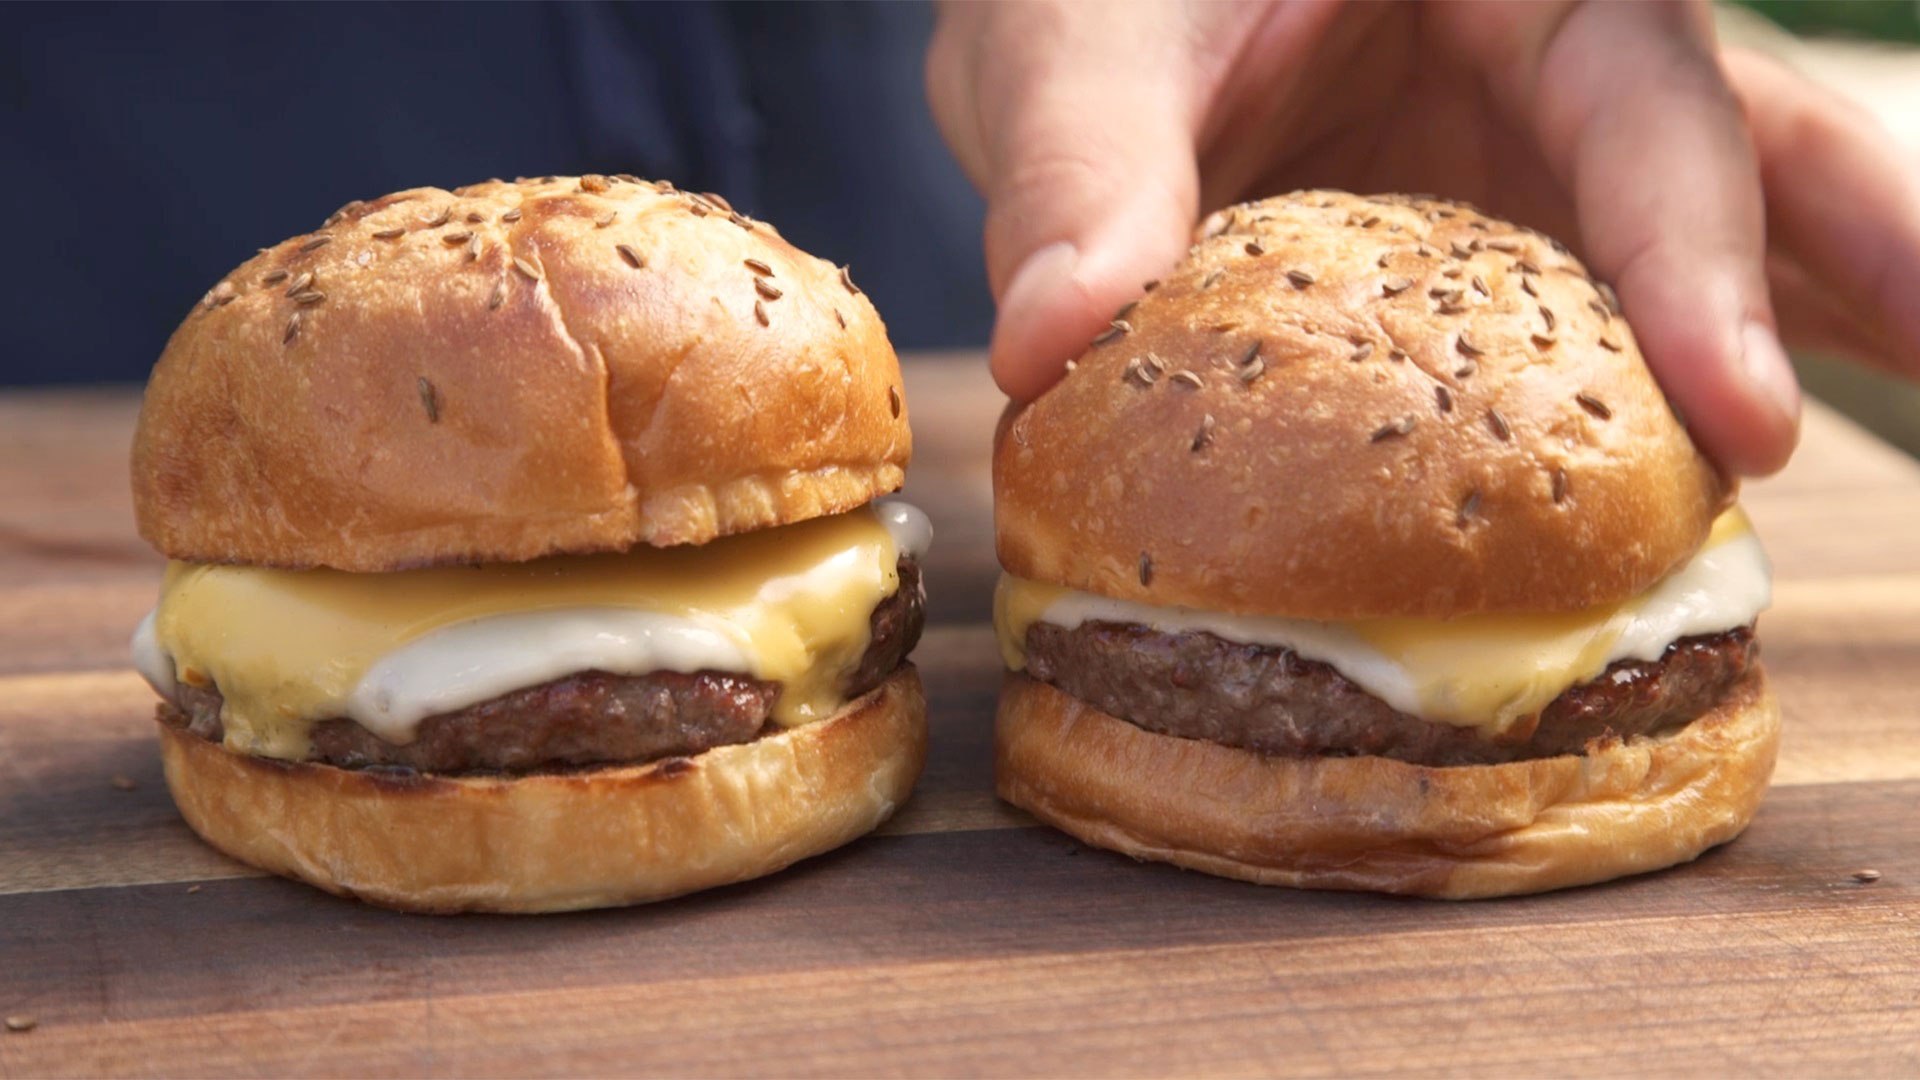 Video: How to Perfectly Toast Burger Buns on the Grill